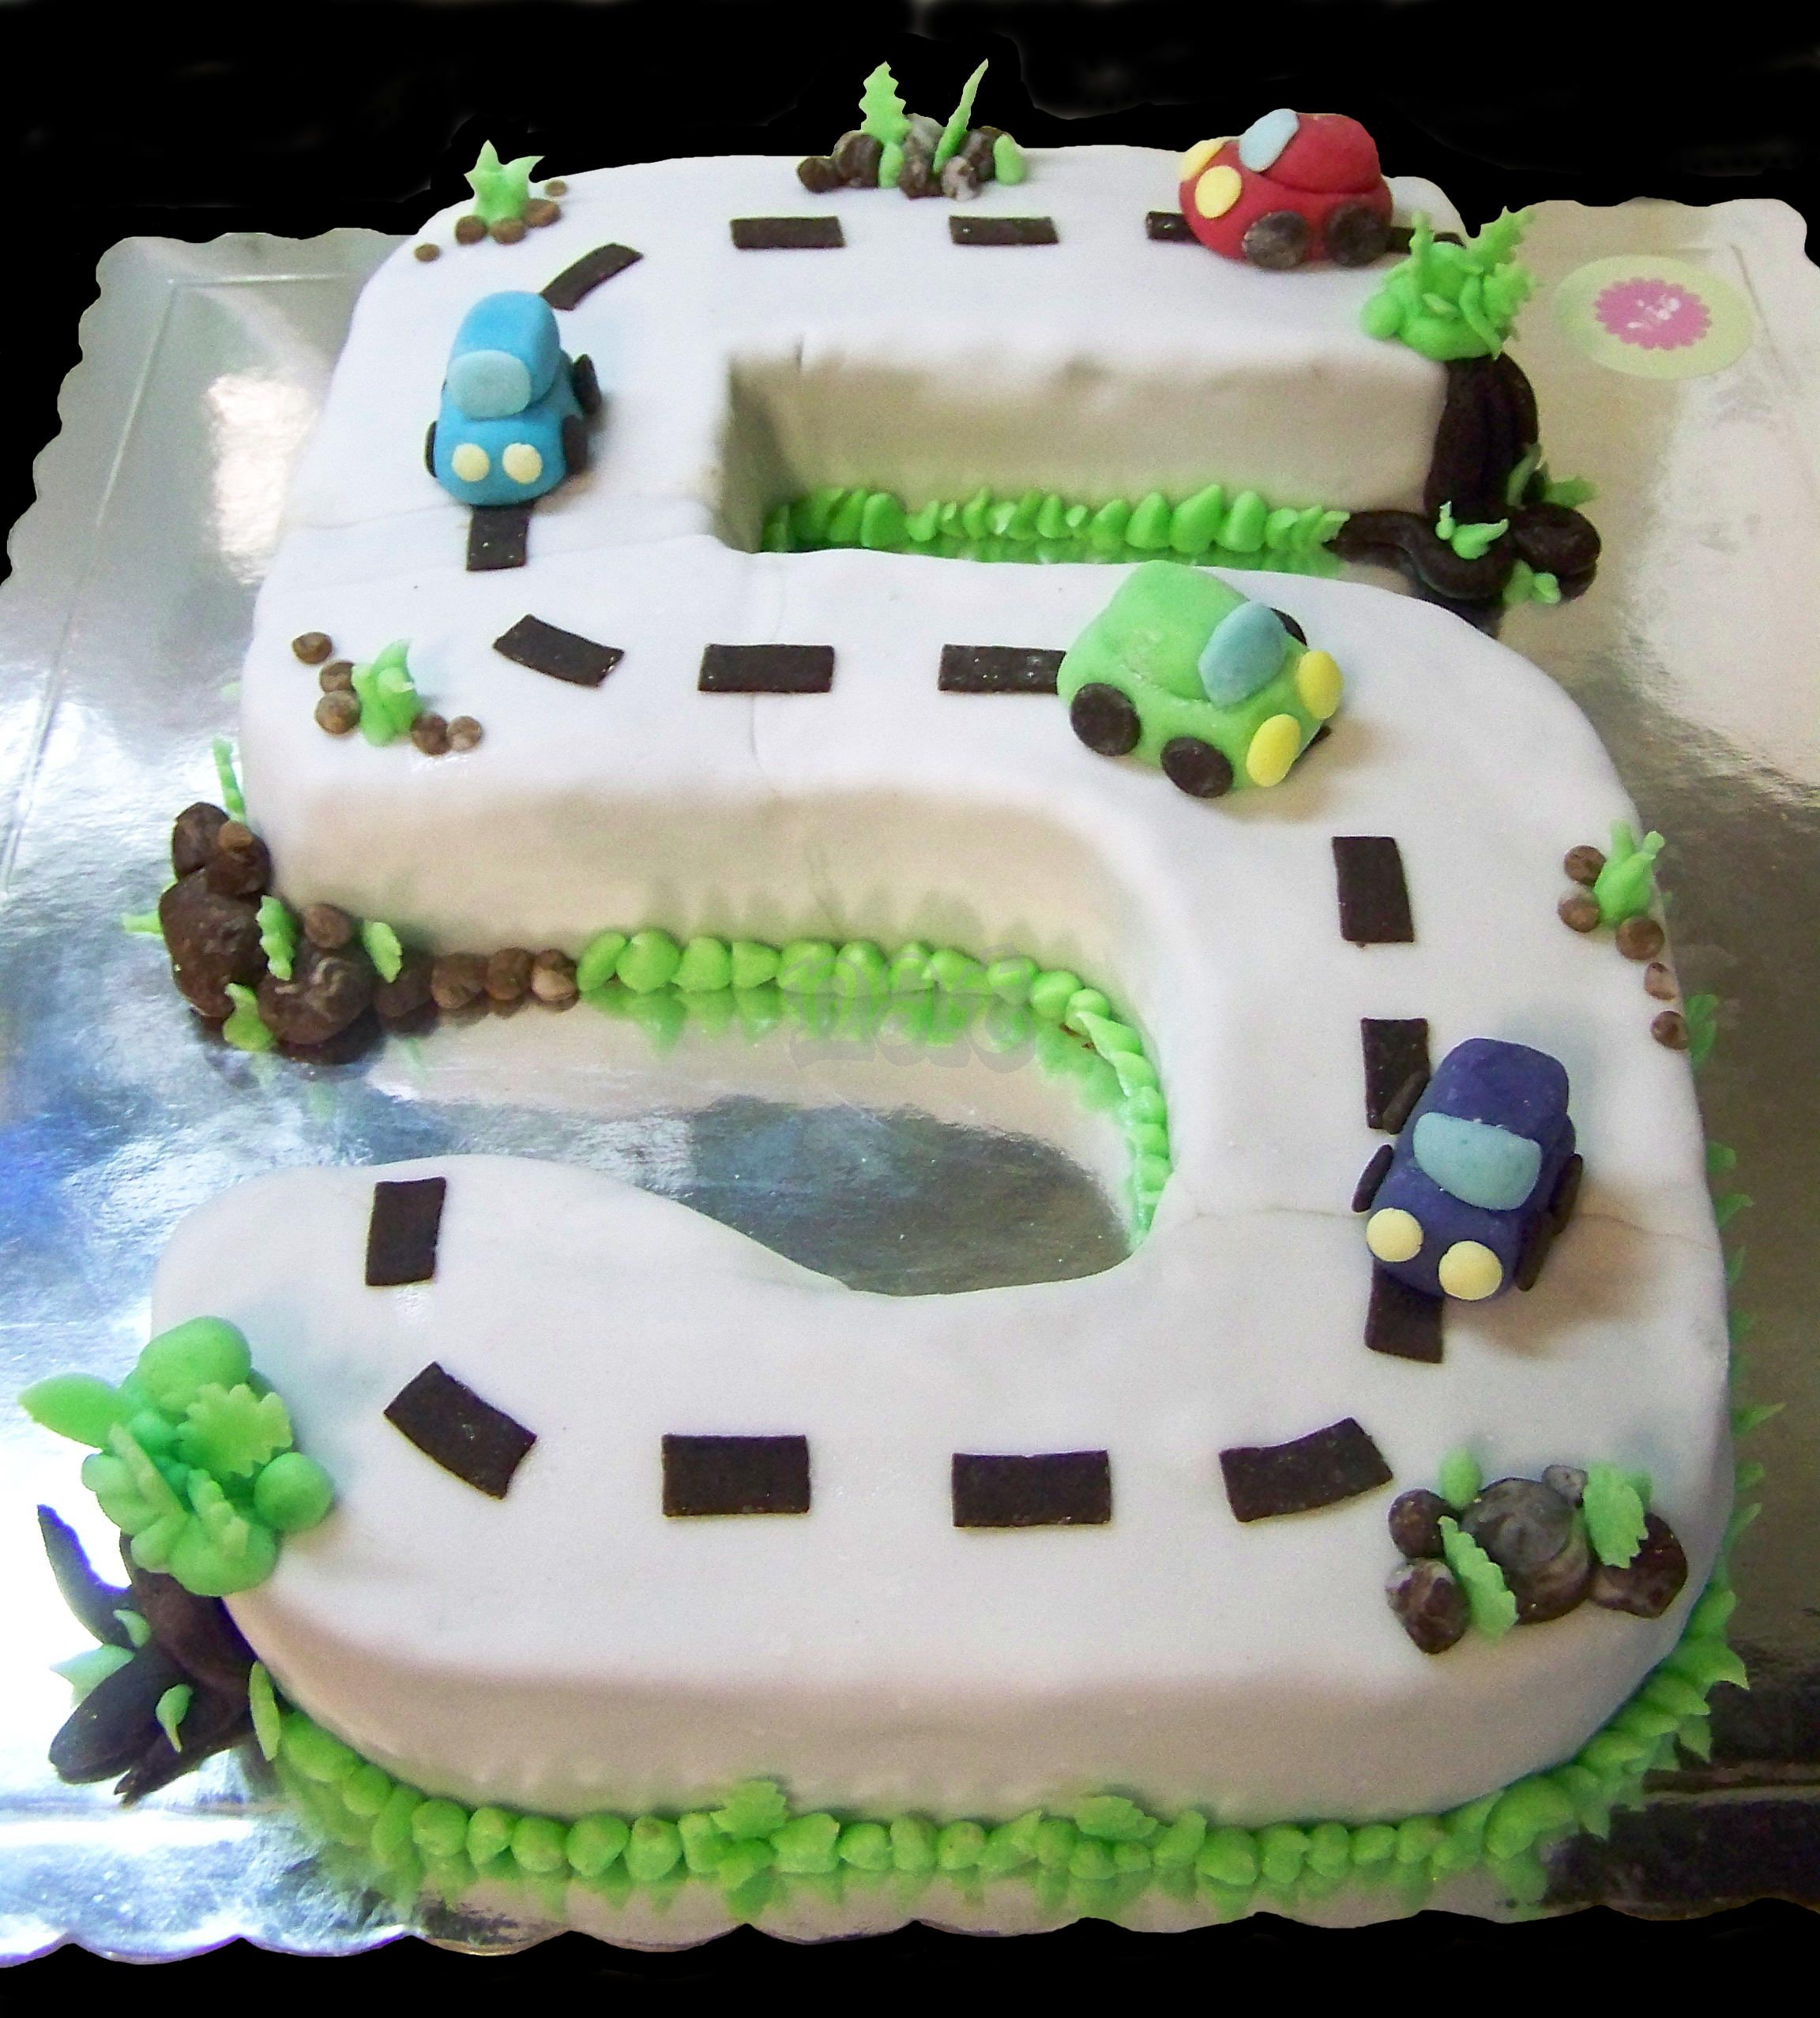 Cake Designs With Cars : Car Shaped Birthday Cakes images